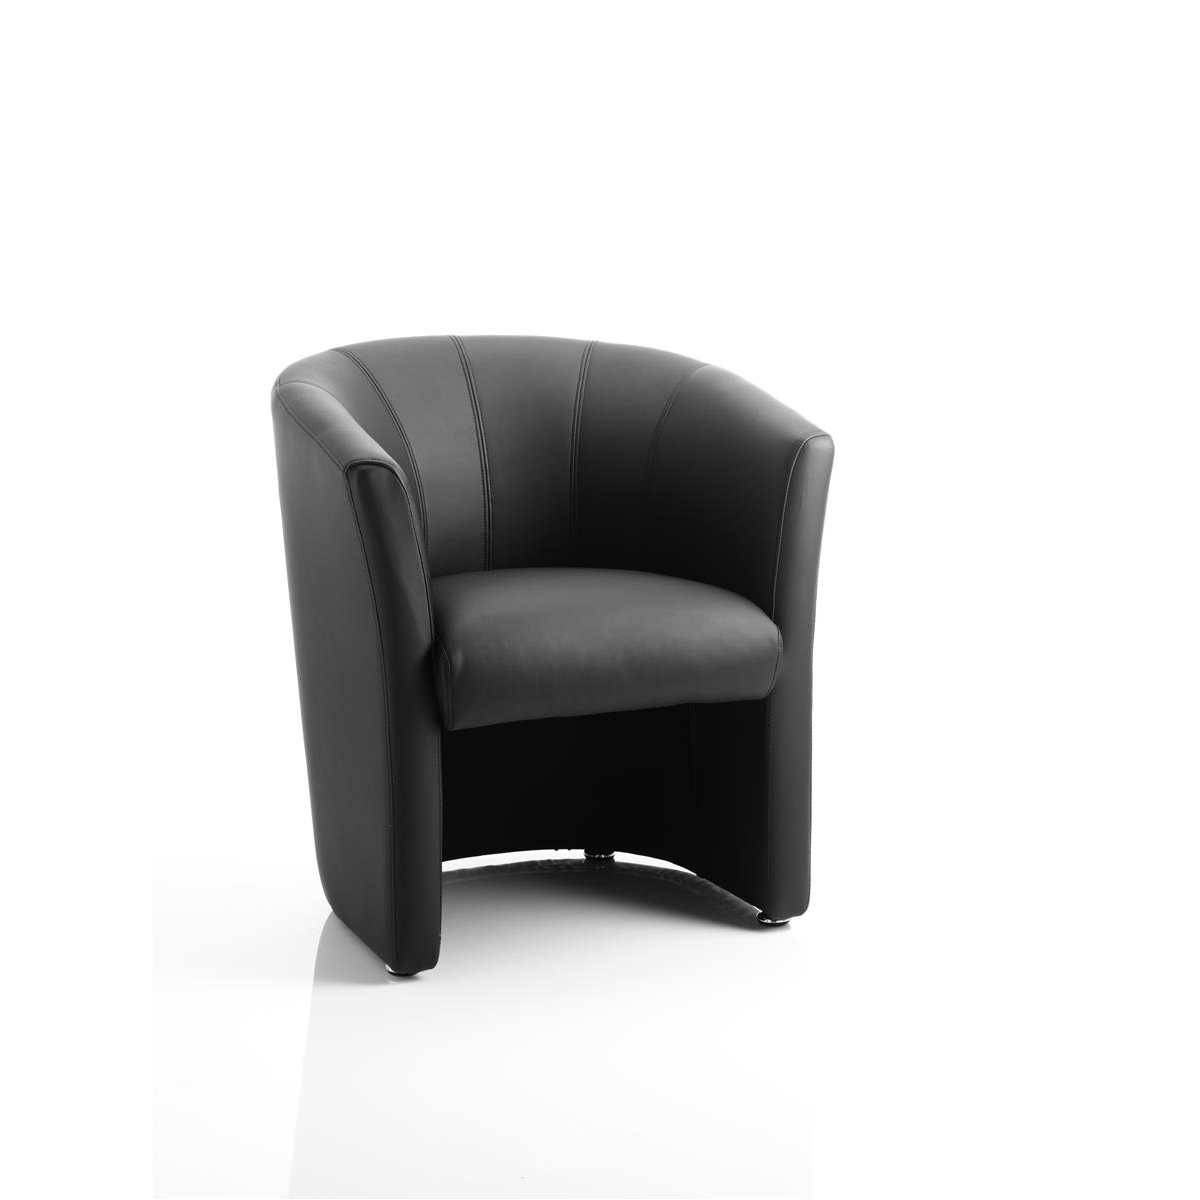 #Trexus Tub Arm Chair Black Leather 450x480x460mm Ref BR000100